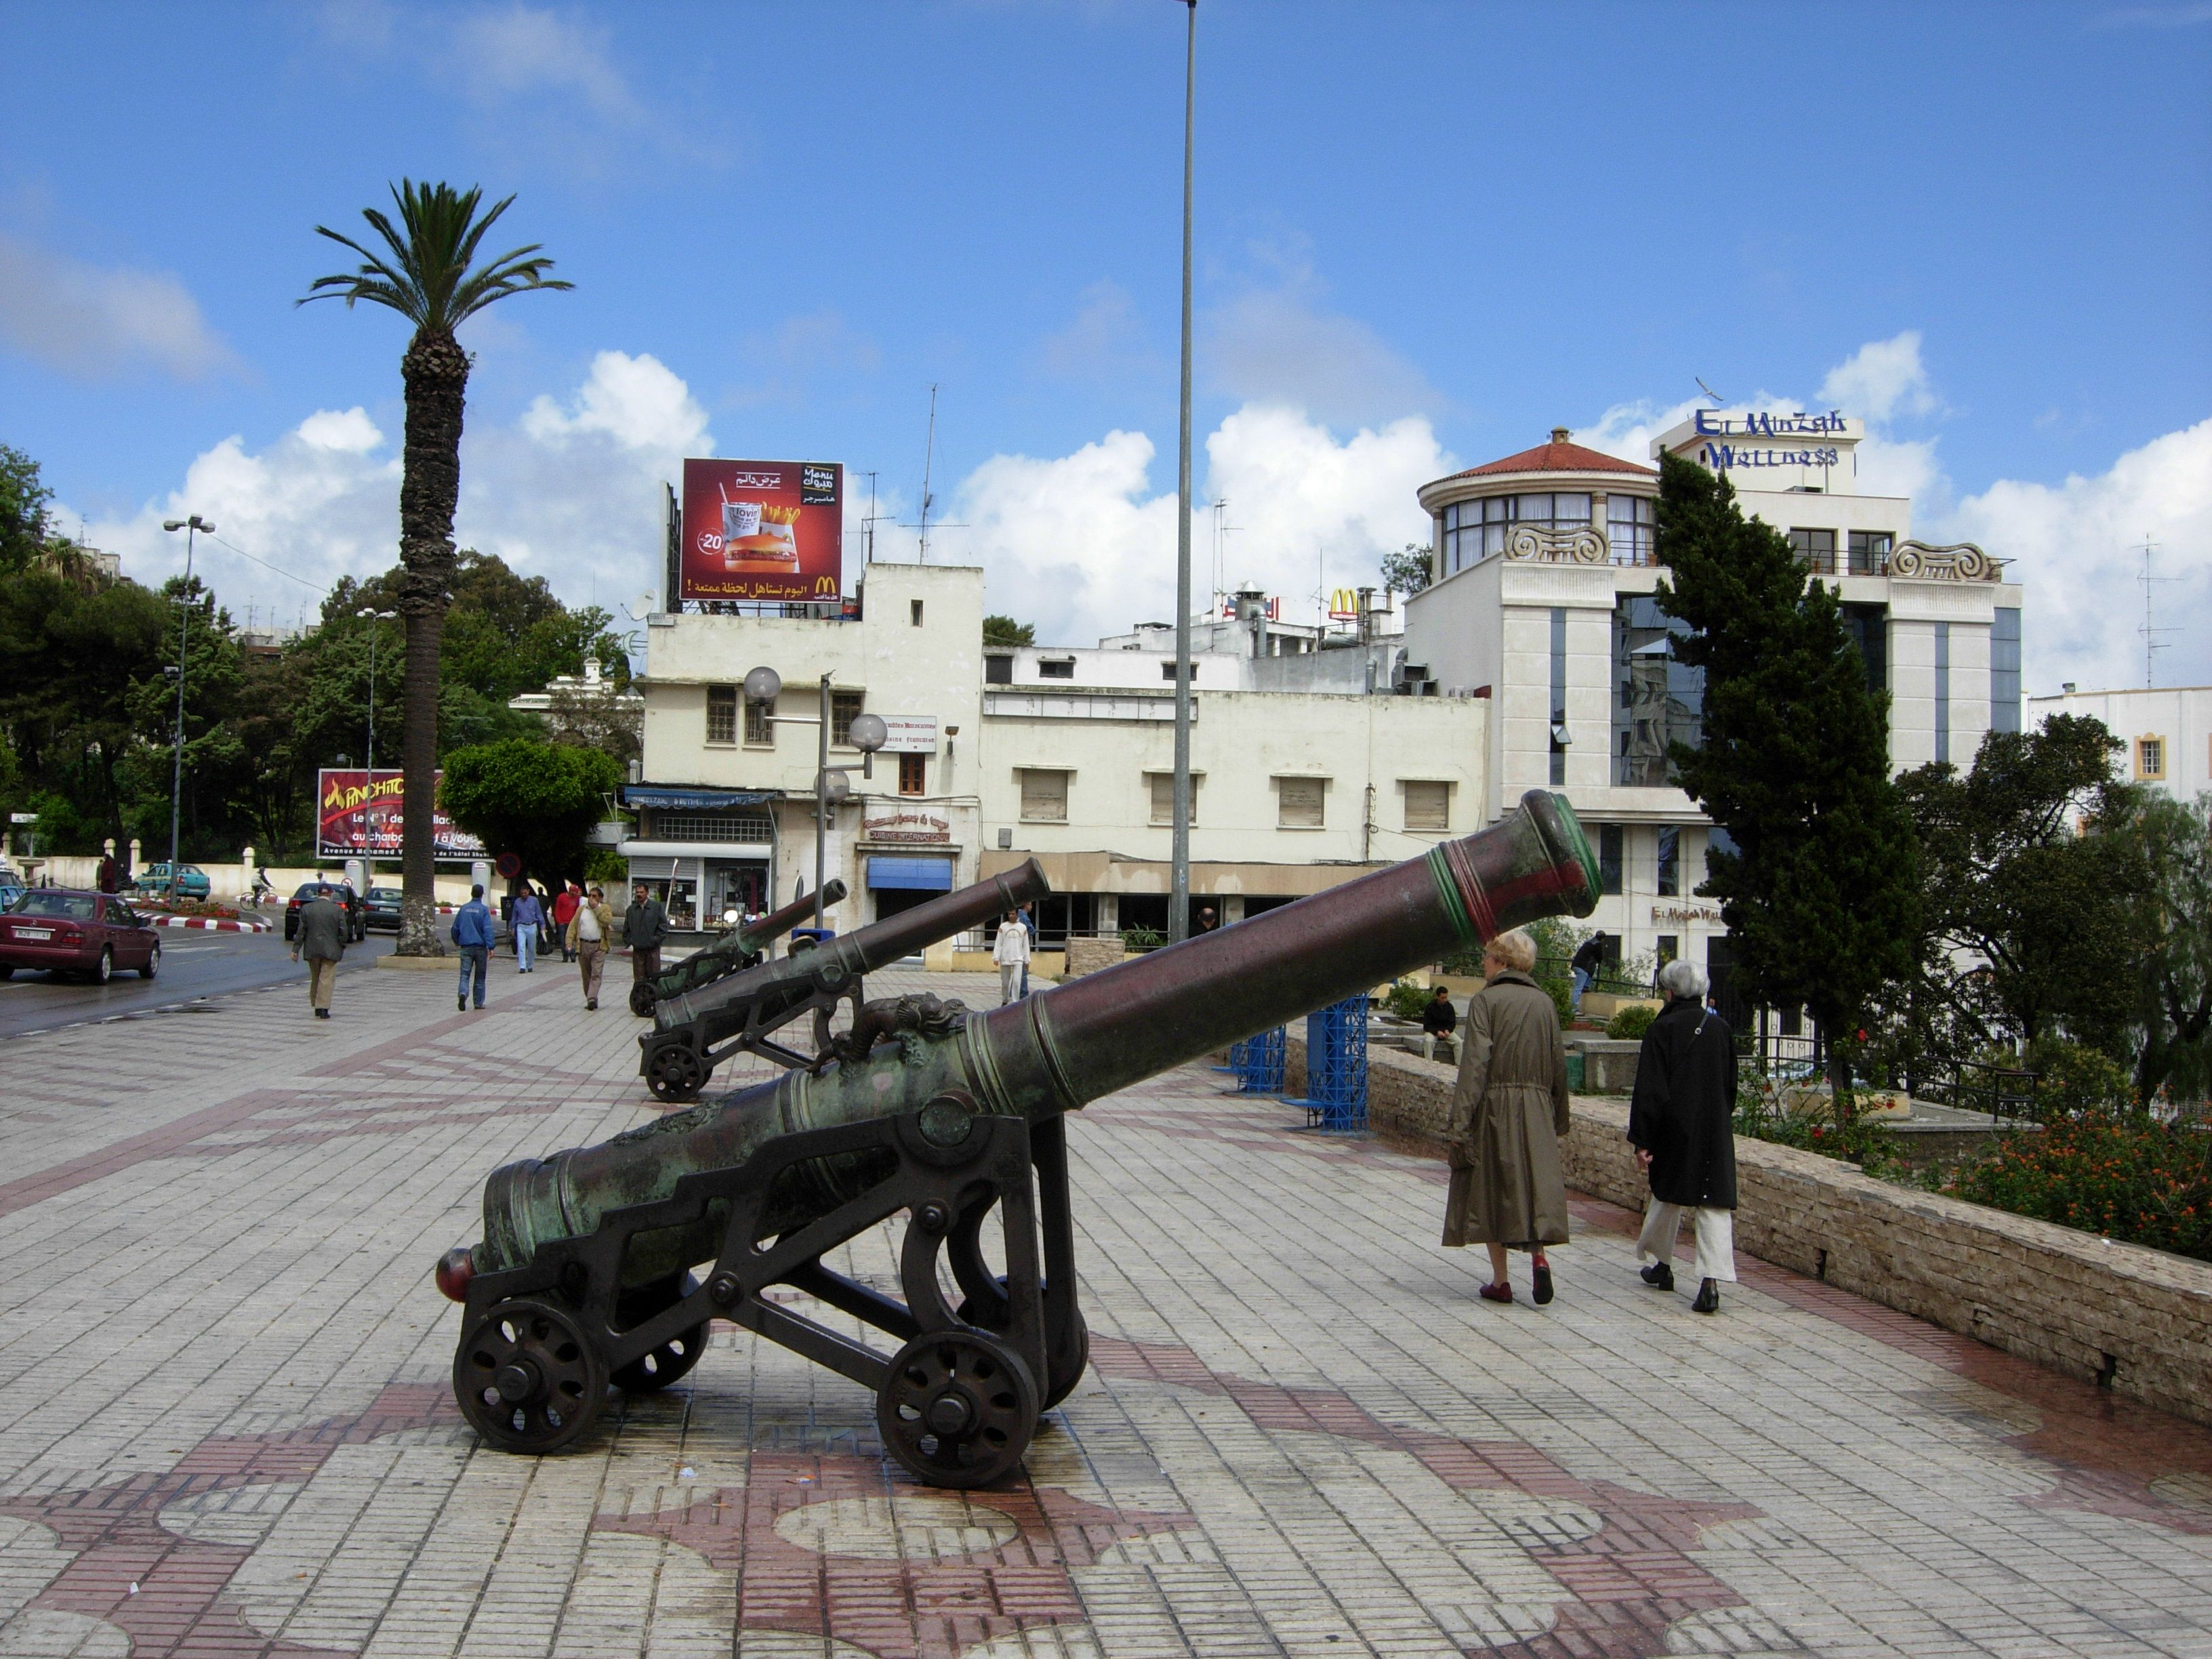 Canons On Terrasse Des Paresseux Just Minutes From Our